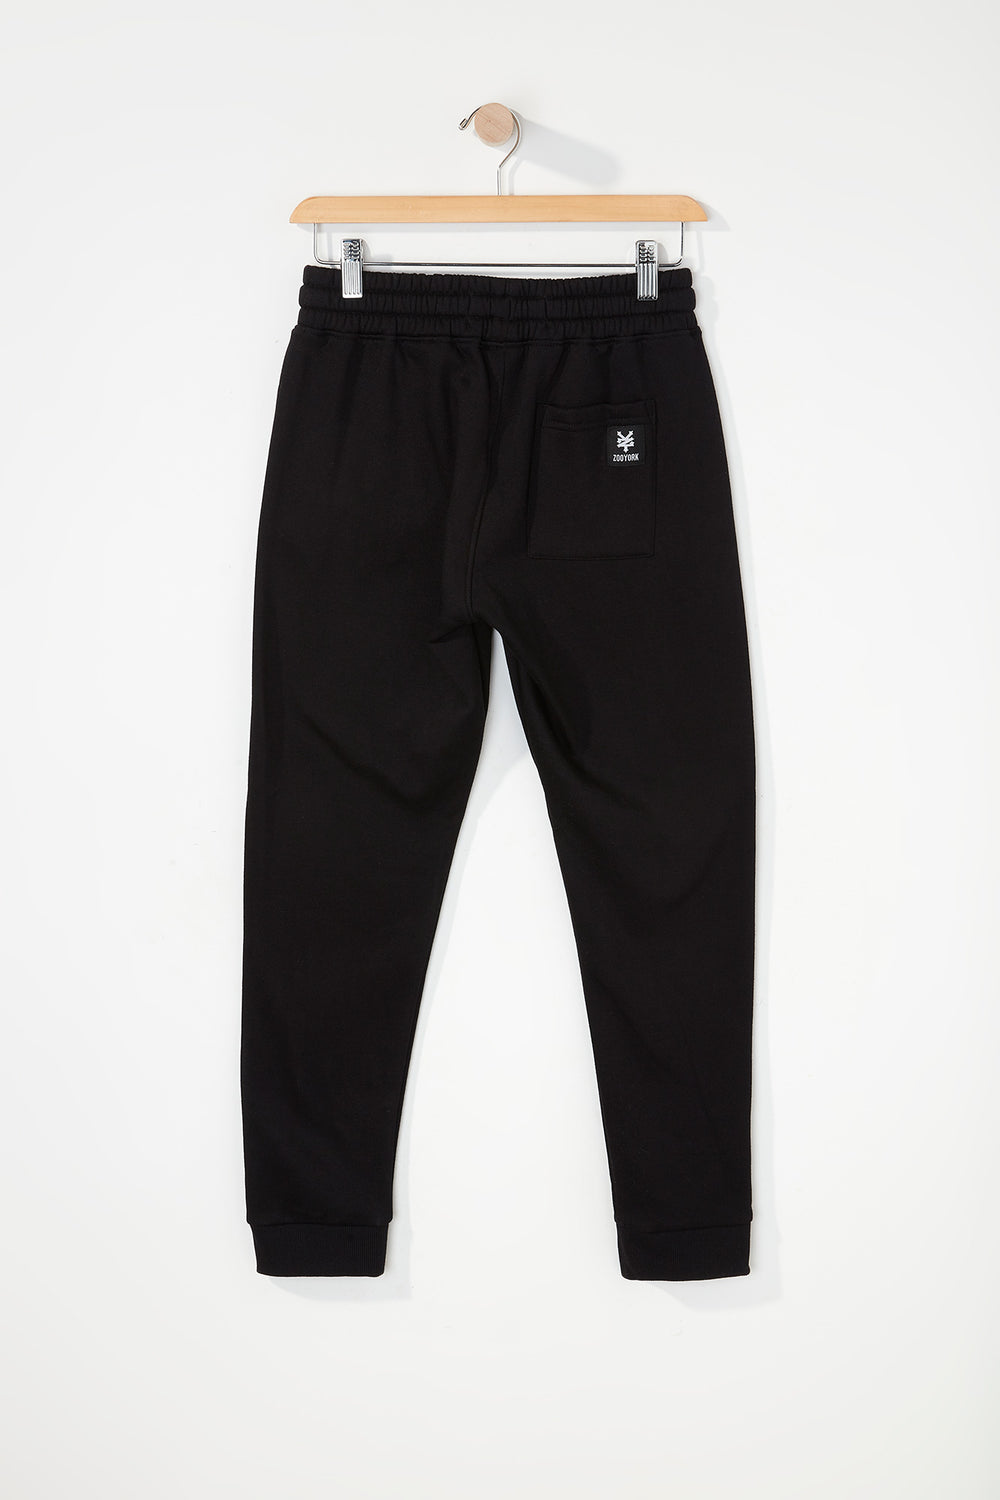 Zoo York Boys Embroidered Logo Jogger Black